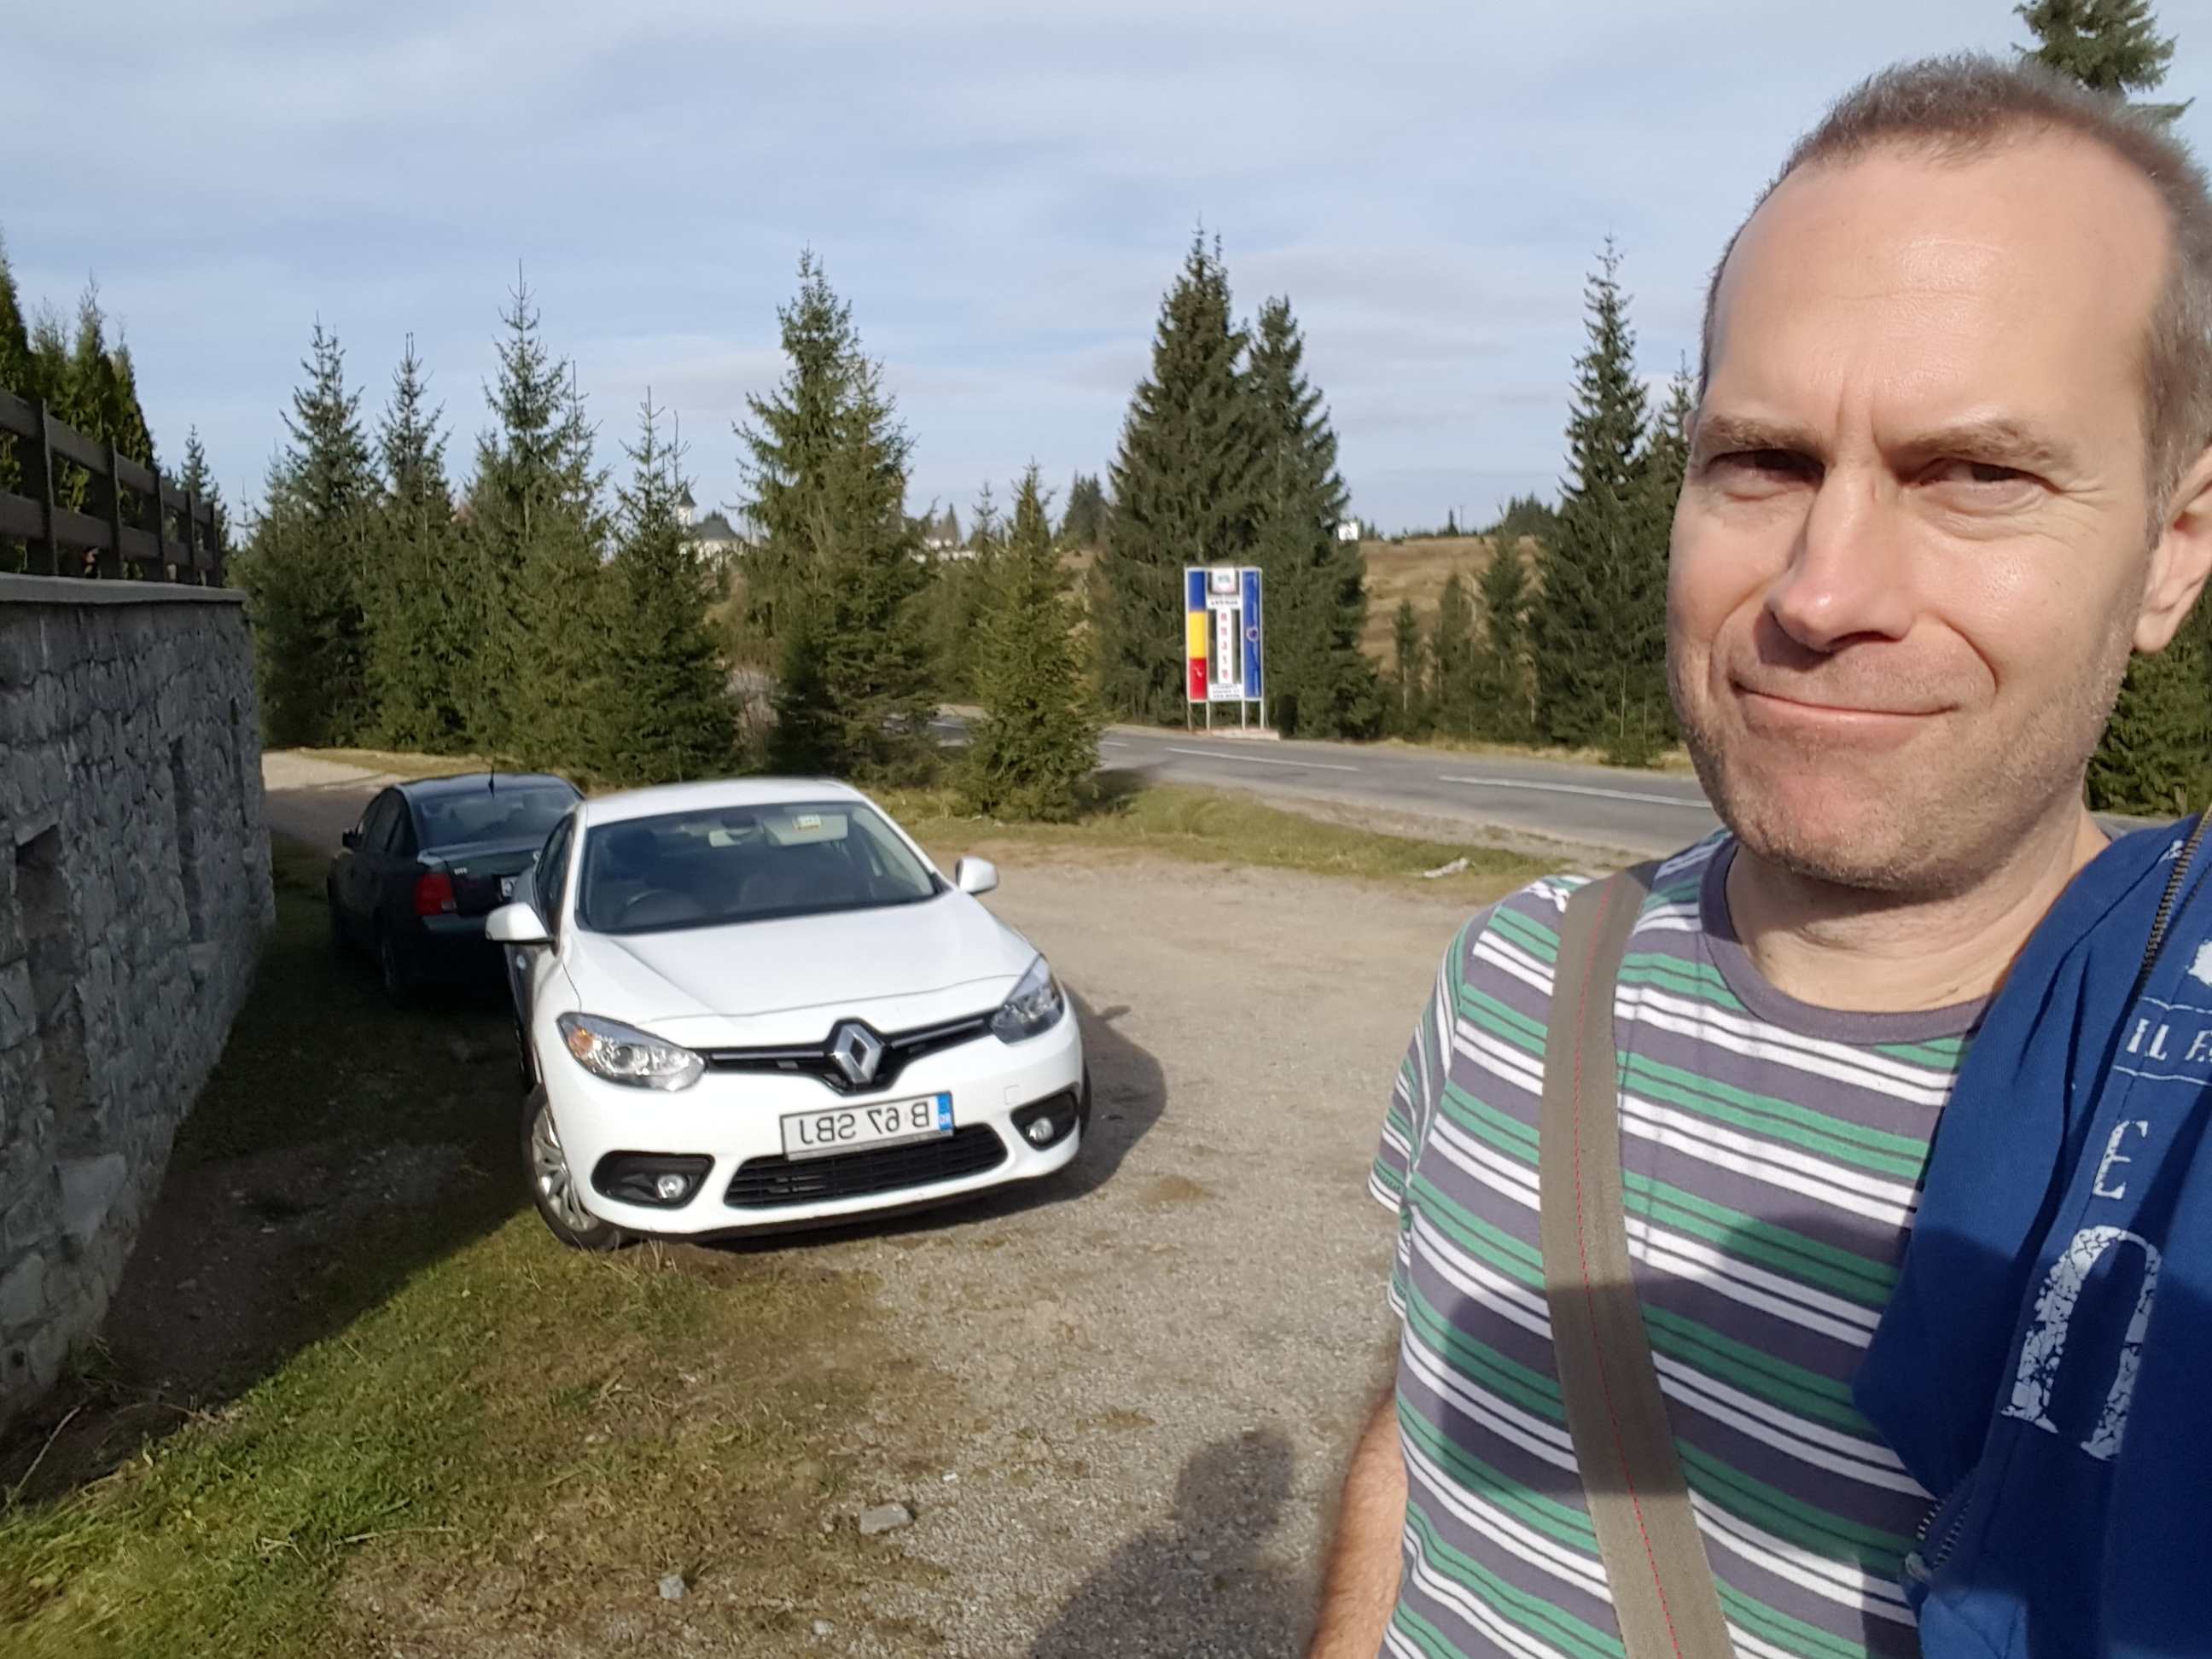 Our Renault (E)Fluence hire car - it really stinks